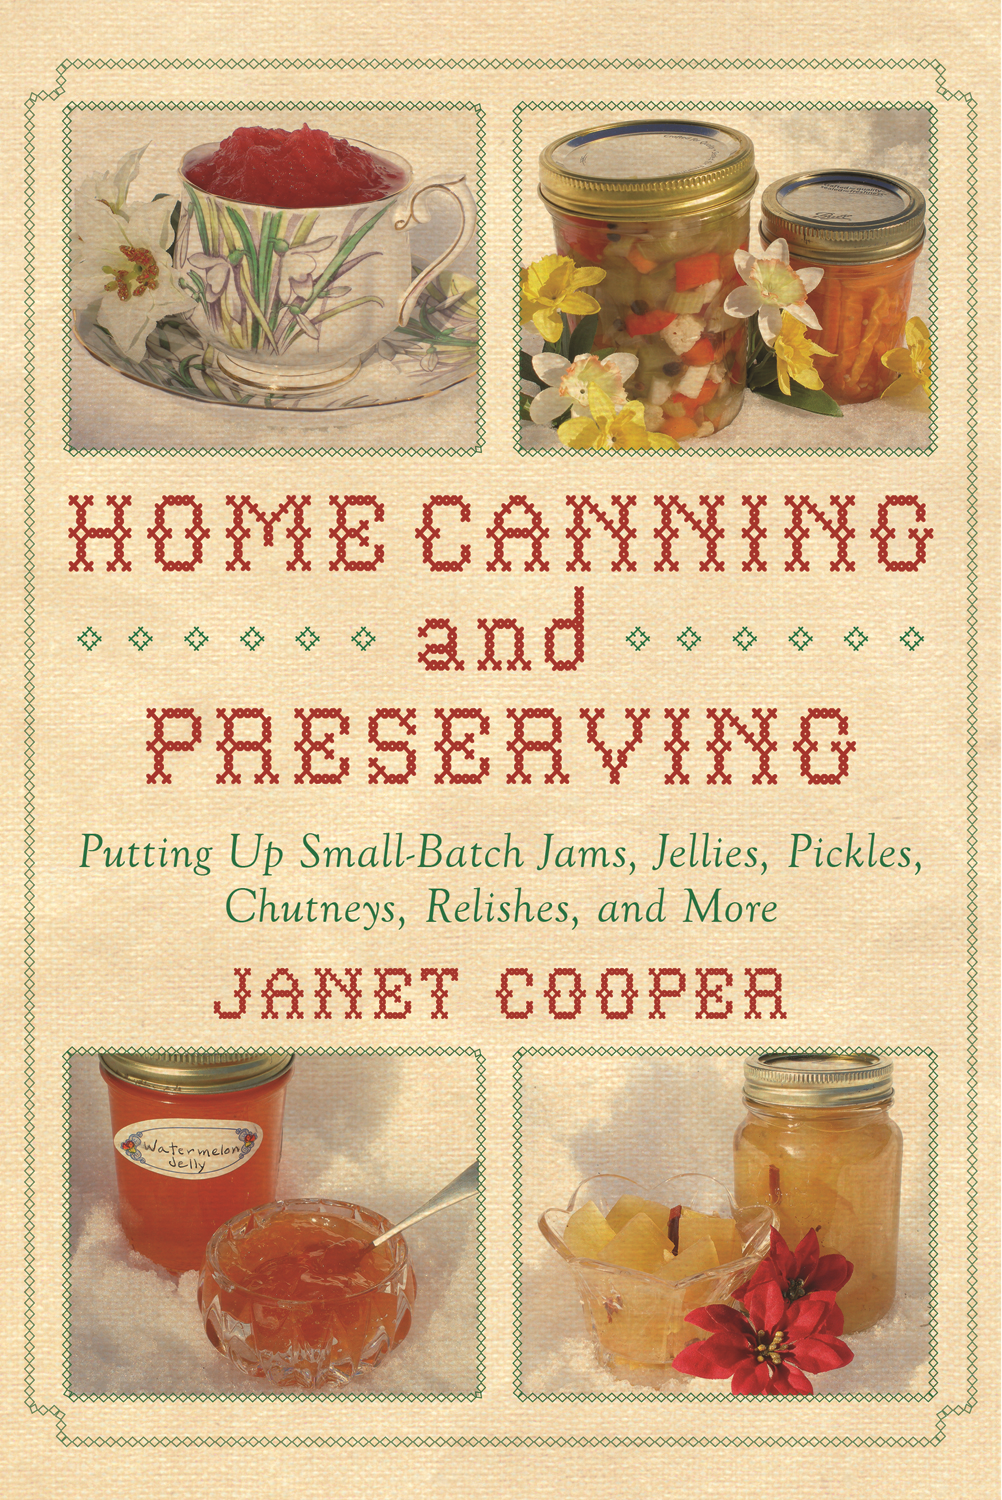 Home Canning and Preserving: Putting Up Small-Batch Jams, Jellies, Pickles, Chutneys, Relishes, Spices, and More  By: Janet Cooper